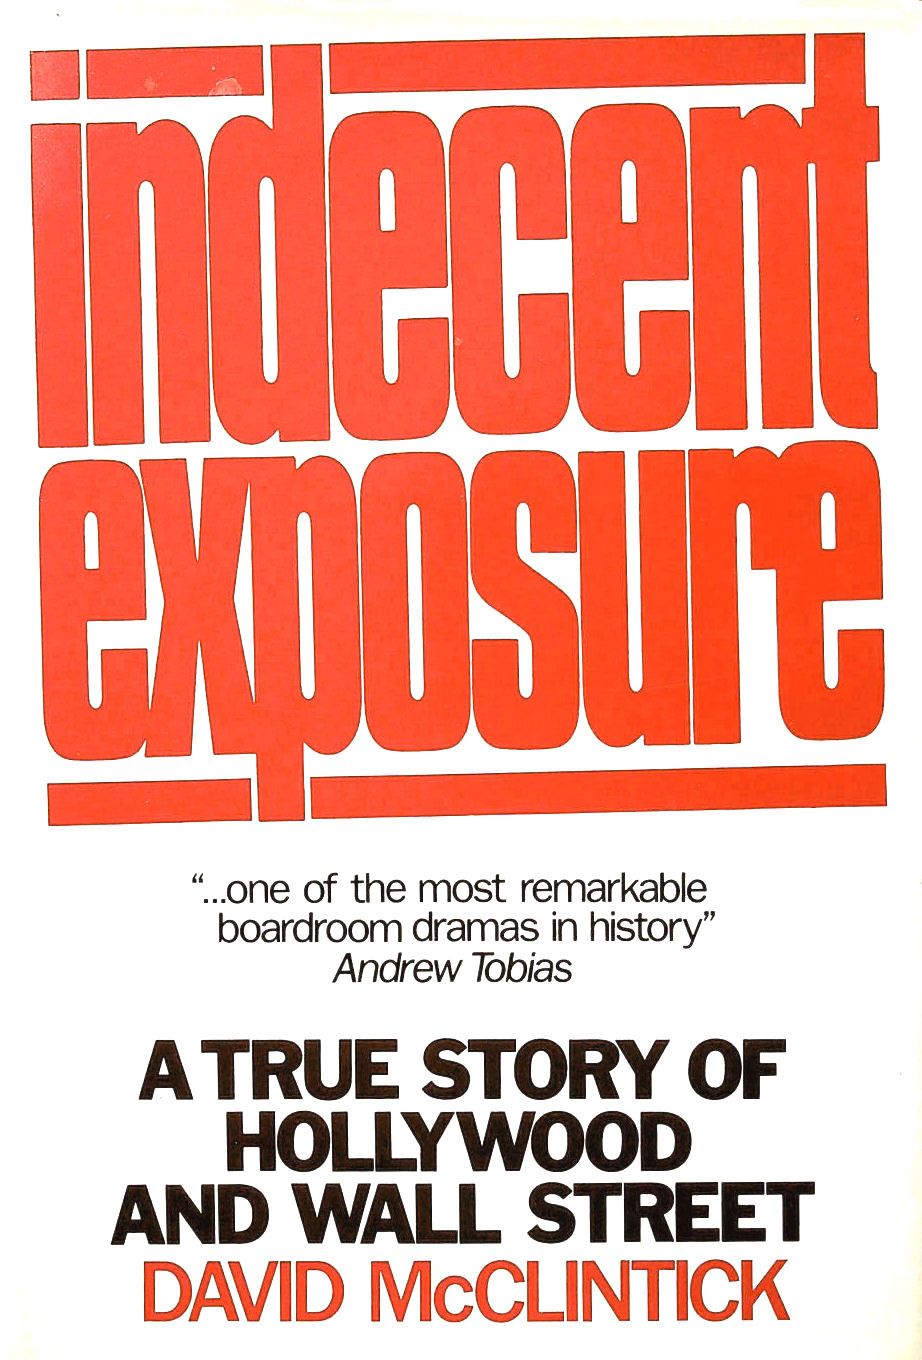 Image for Indecent Exposure: A True Story of Hollywood and Wall Street